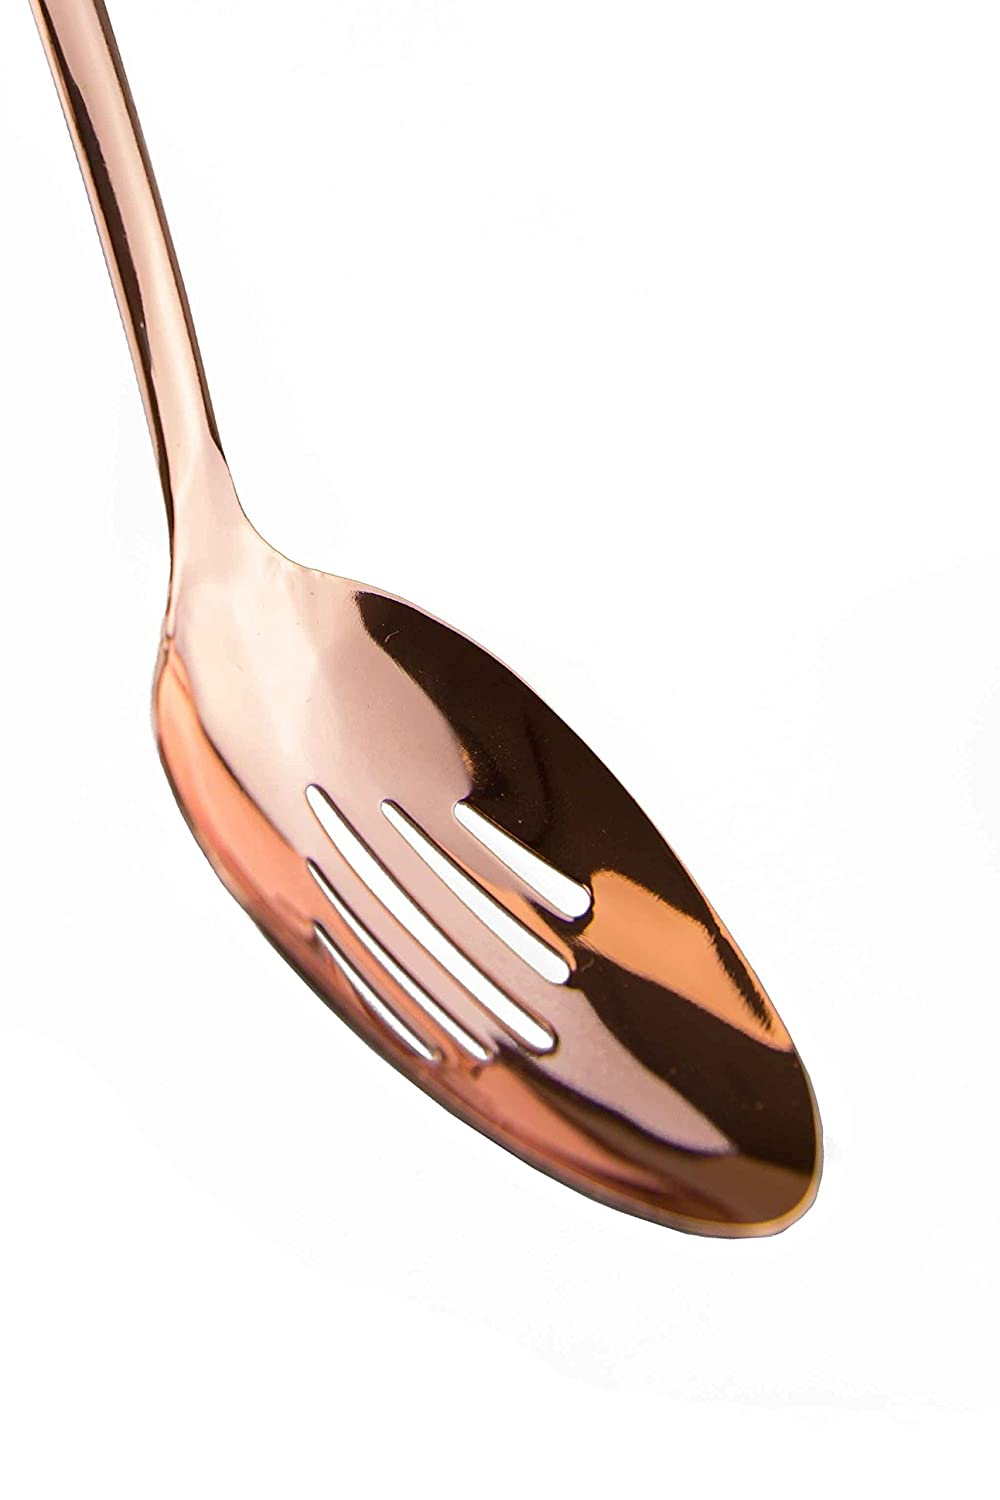 Cook With Color Set of 4 Rose Gold Stainless Steel Cooking Utensil Set with Black Silicone Handles